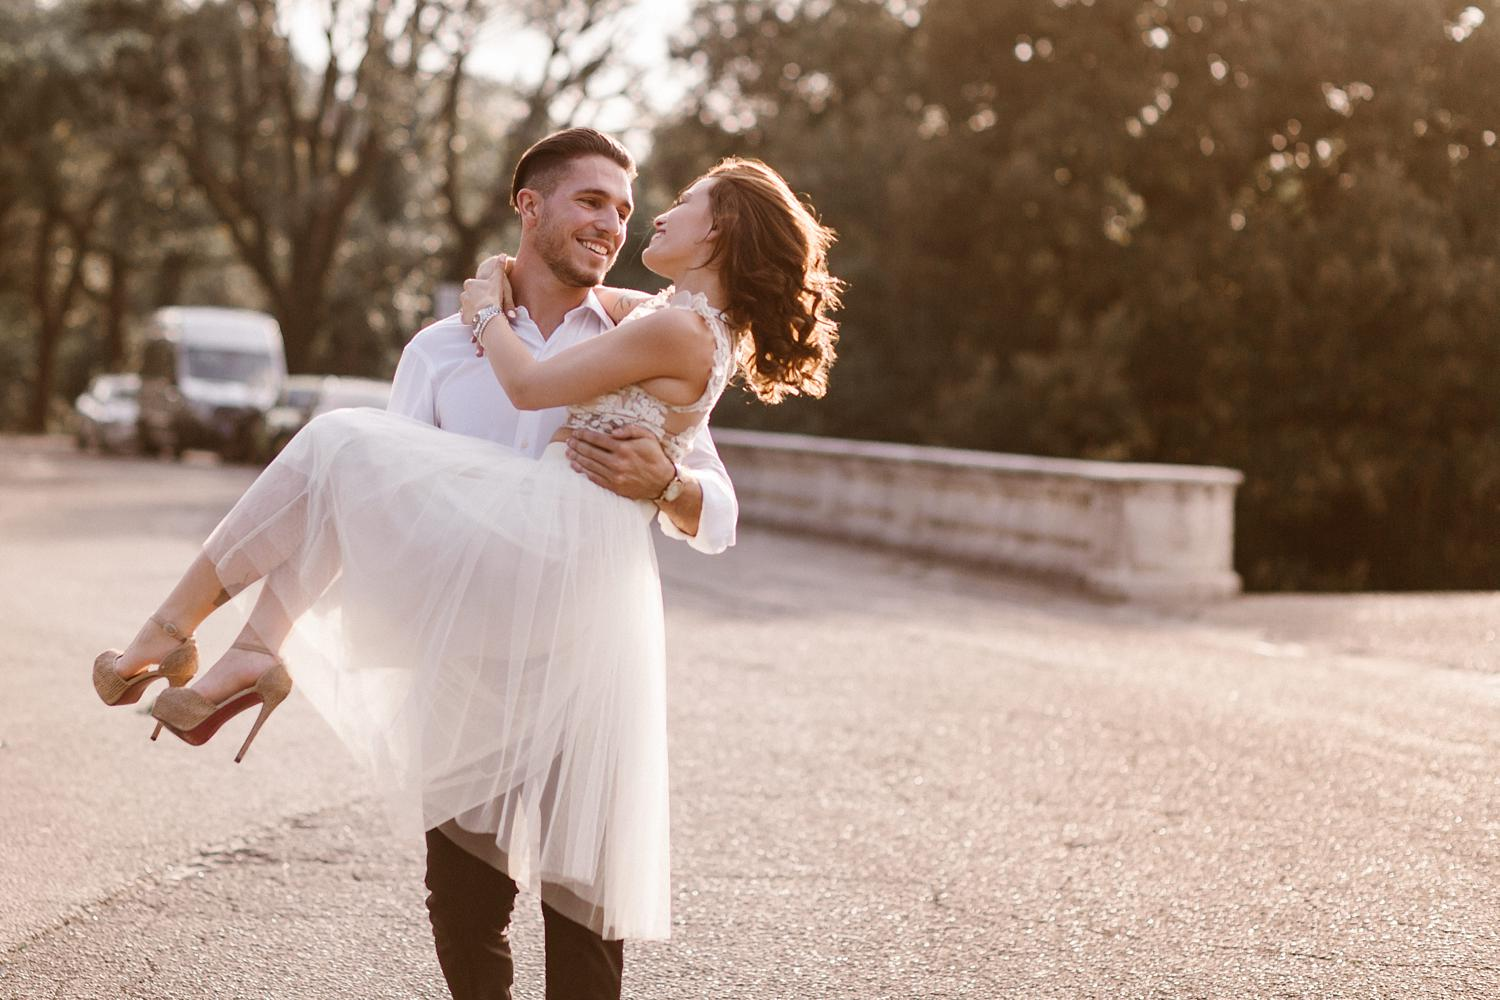 weddingphotographer florence 58 - Maddalena & Arturo - A Chic Anniversary Session in Florence